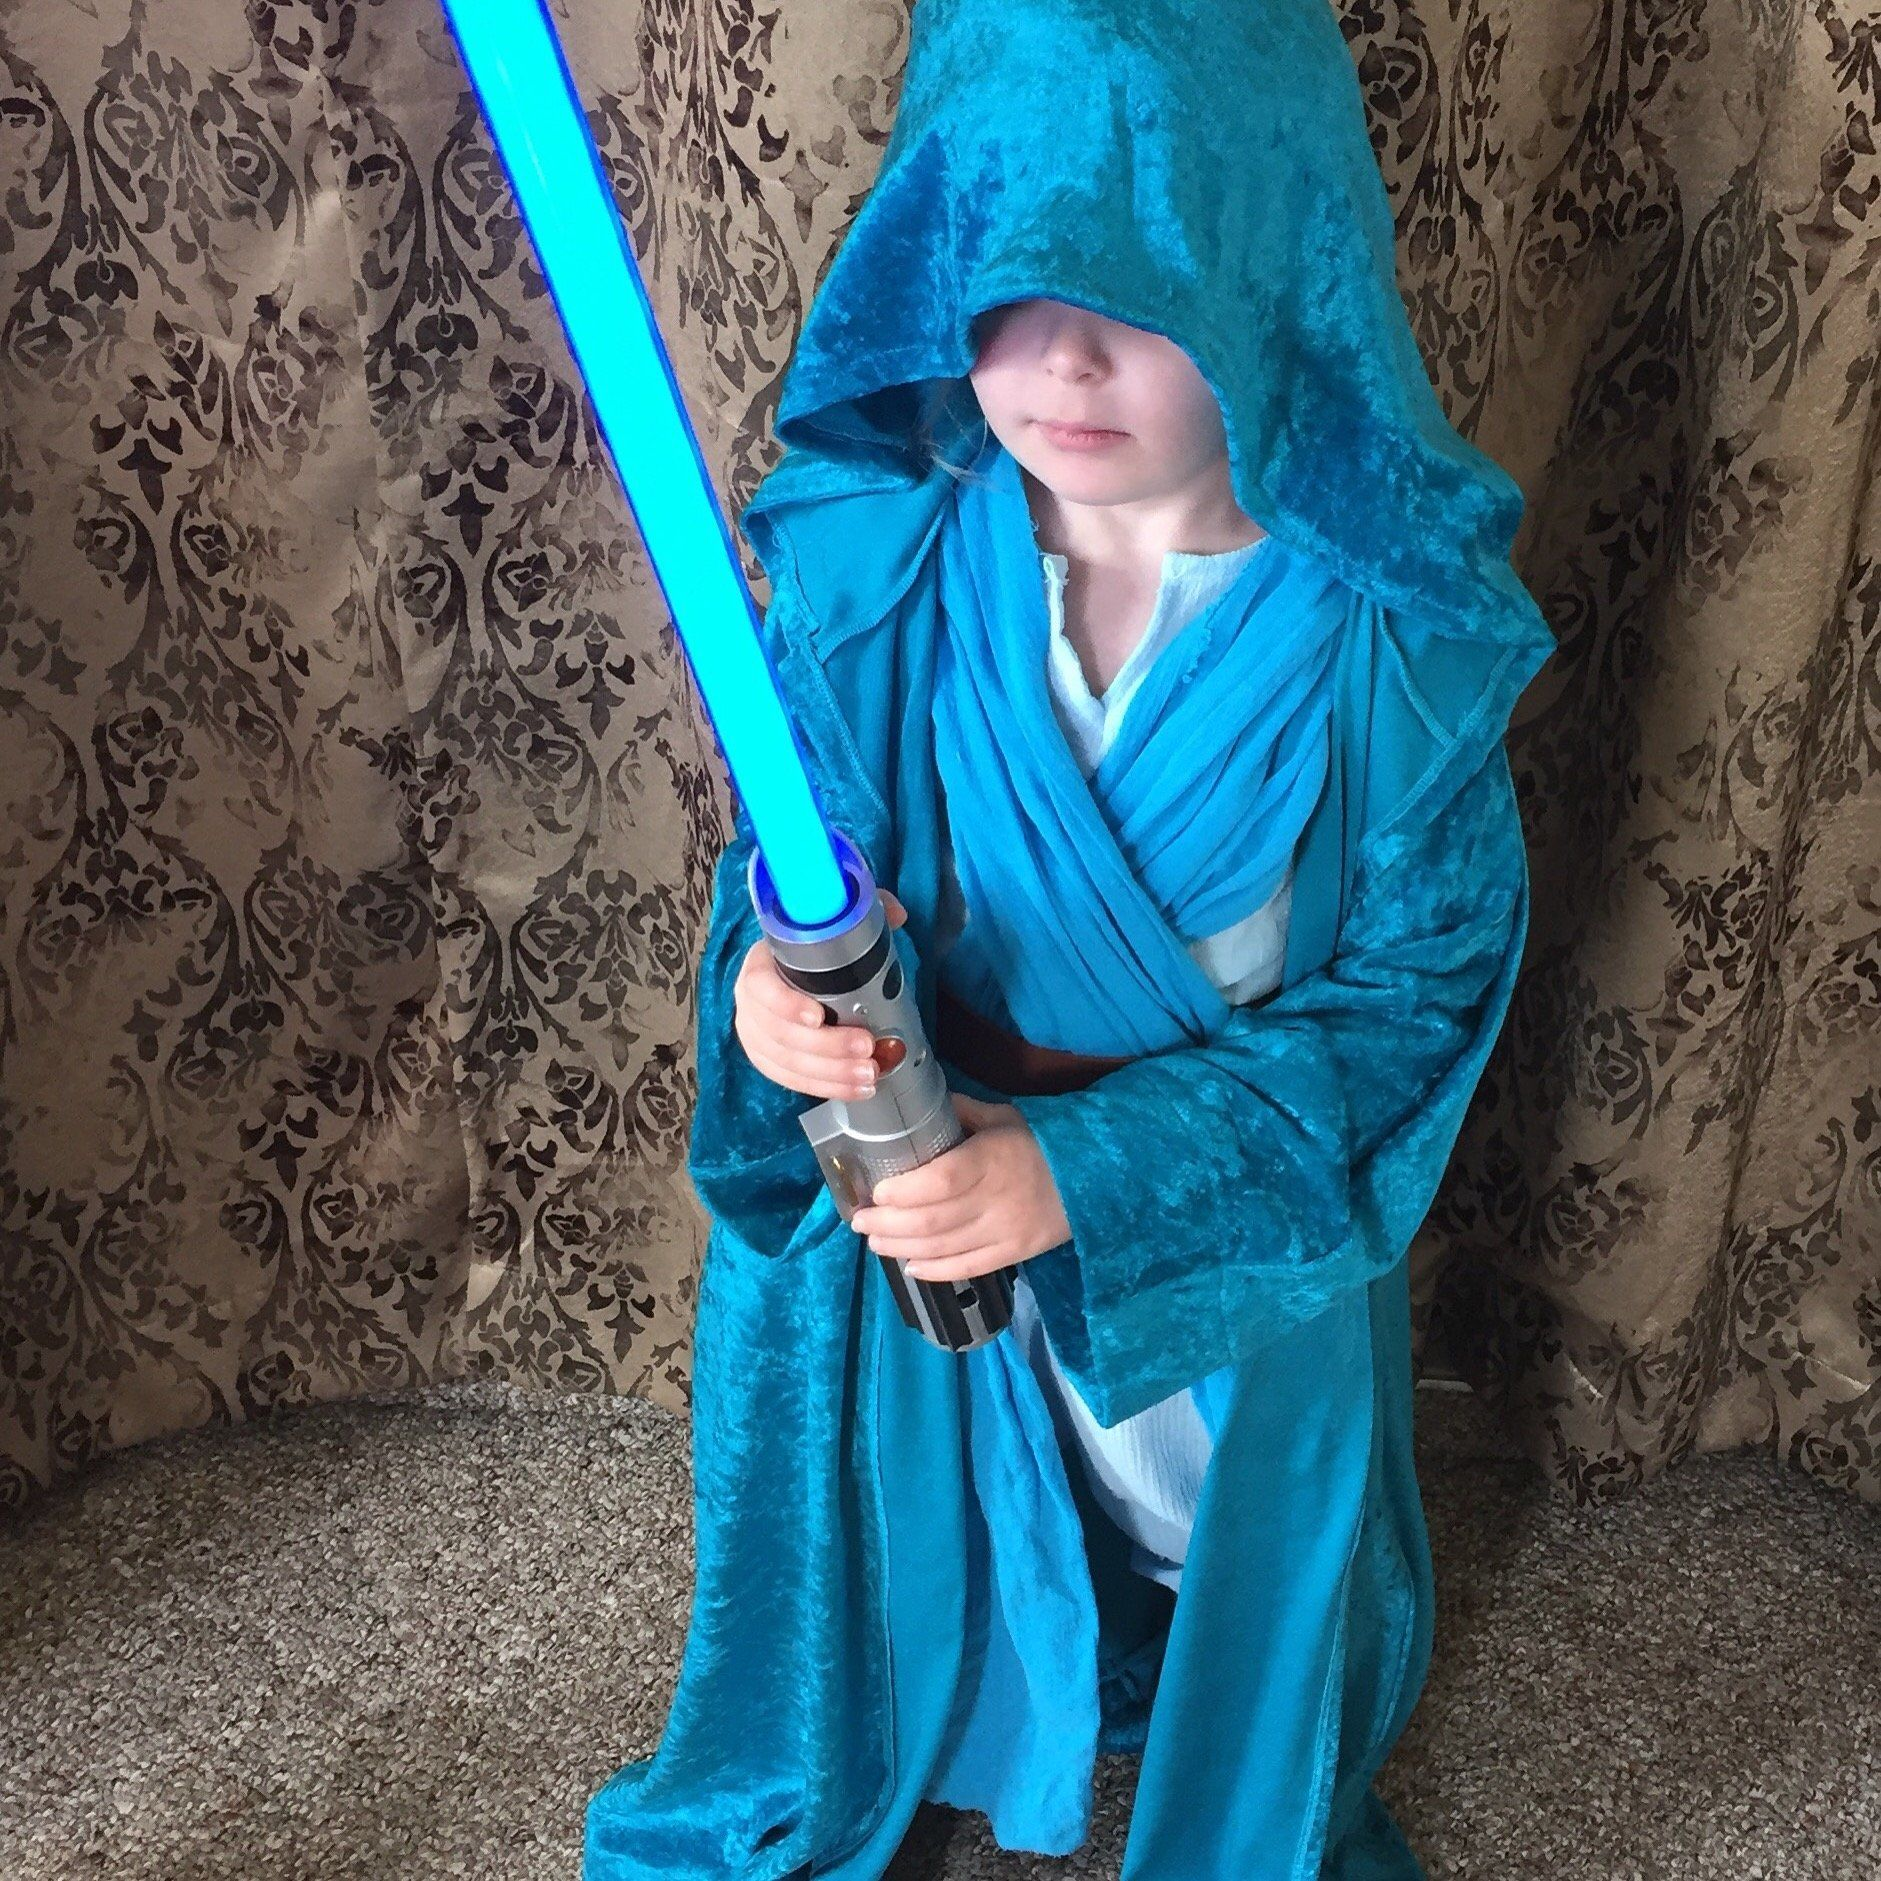 Of course Jedi Elsa Rey has a blue lightsaber.